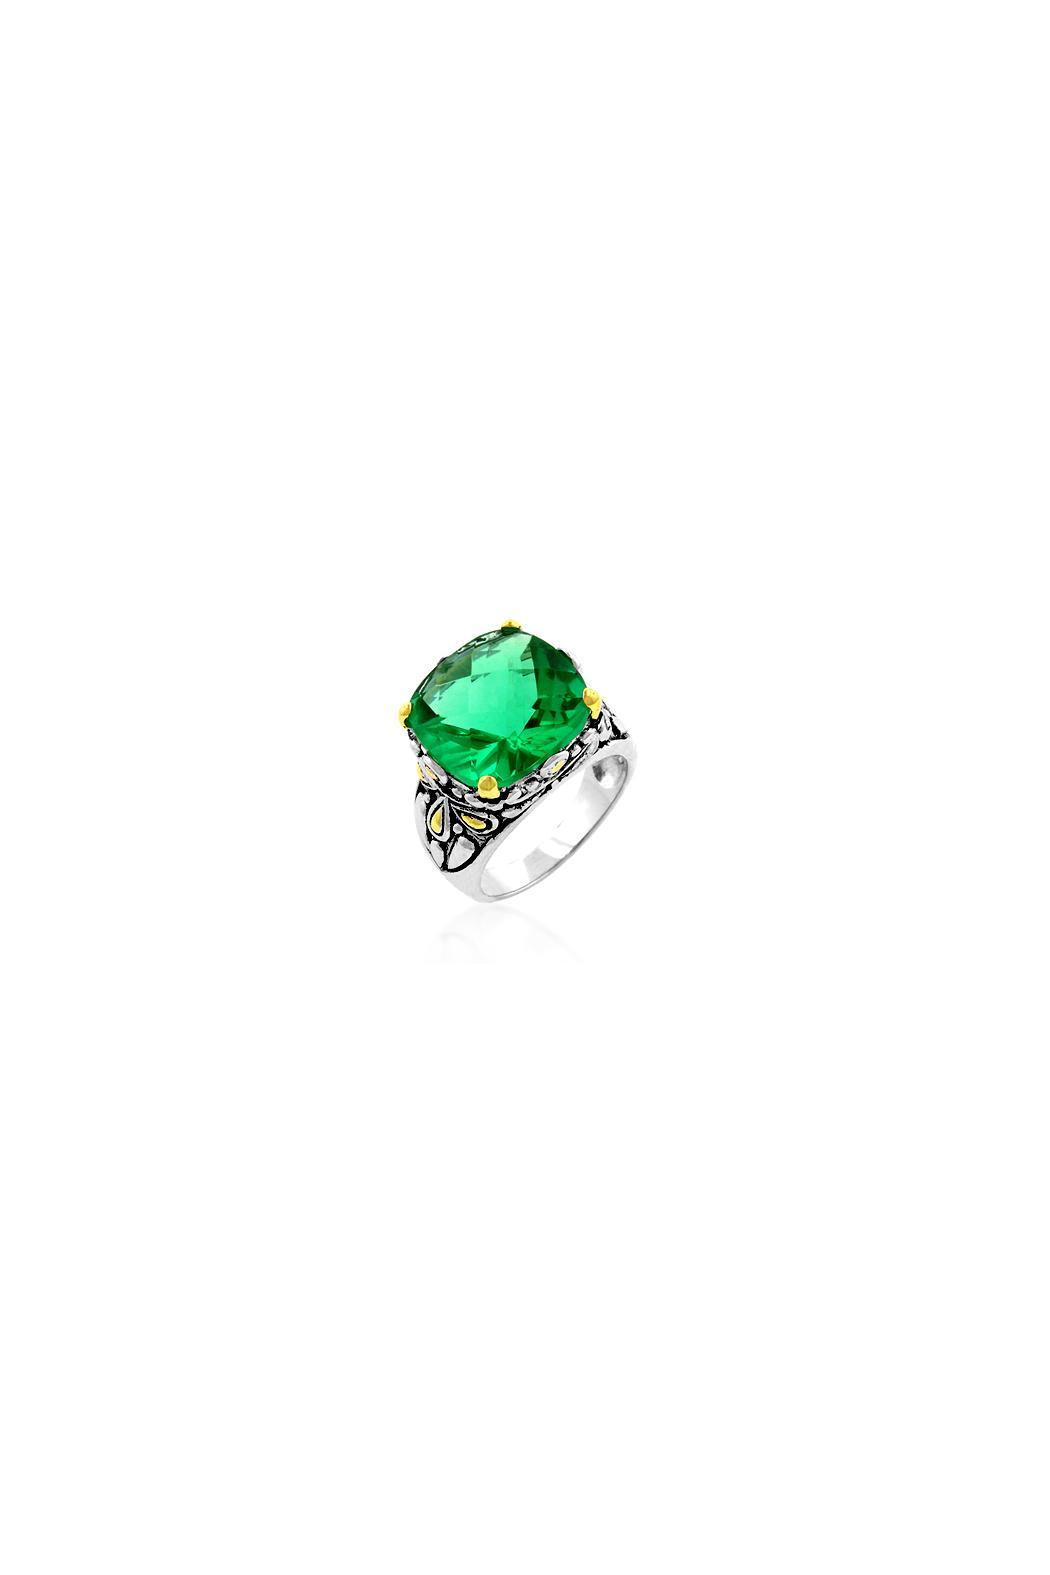 Wild Lilies Jewelry  Emerald Cocktail Ring - Main Image